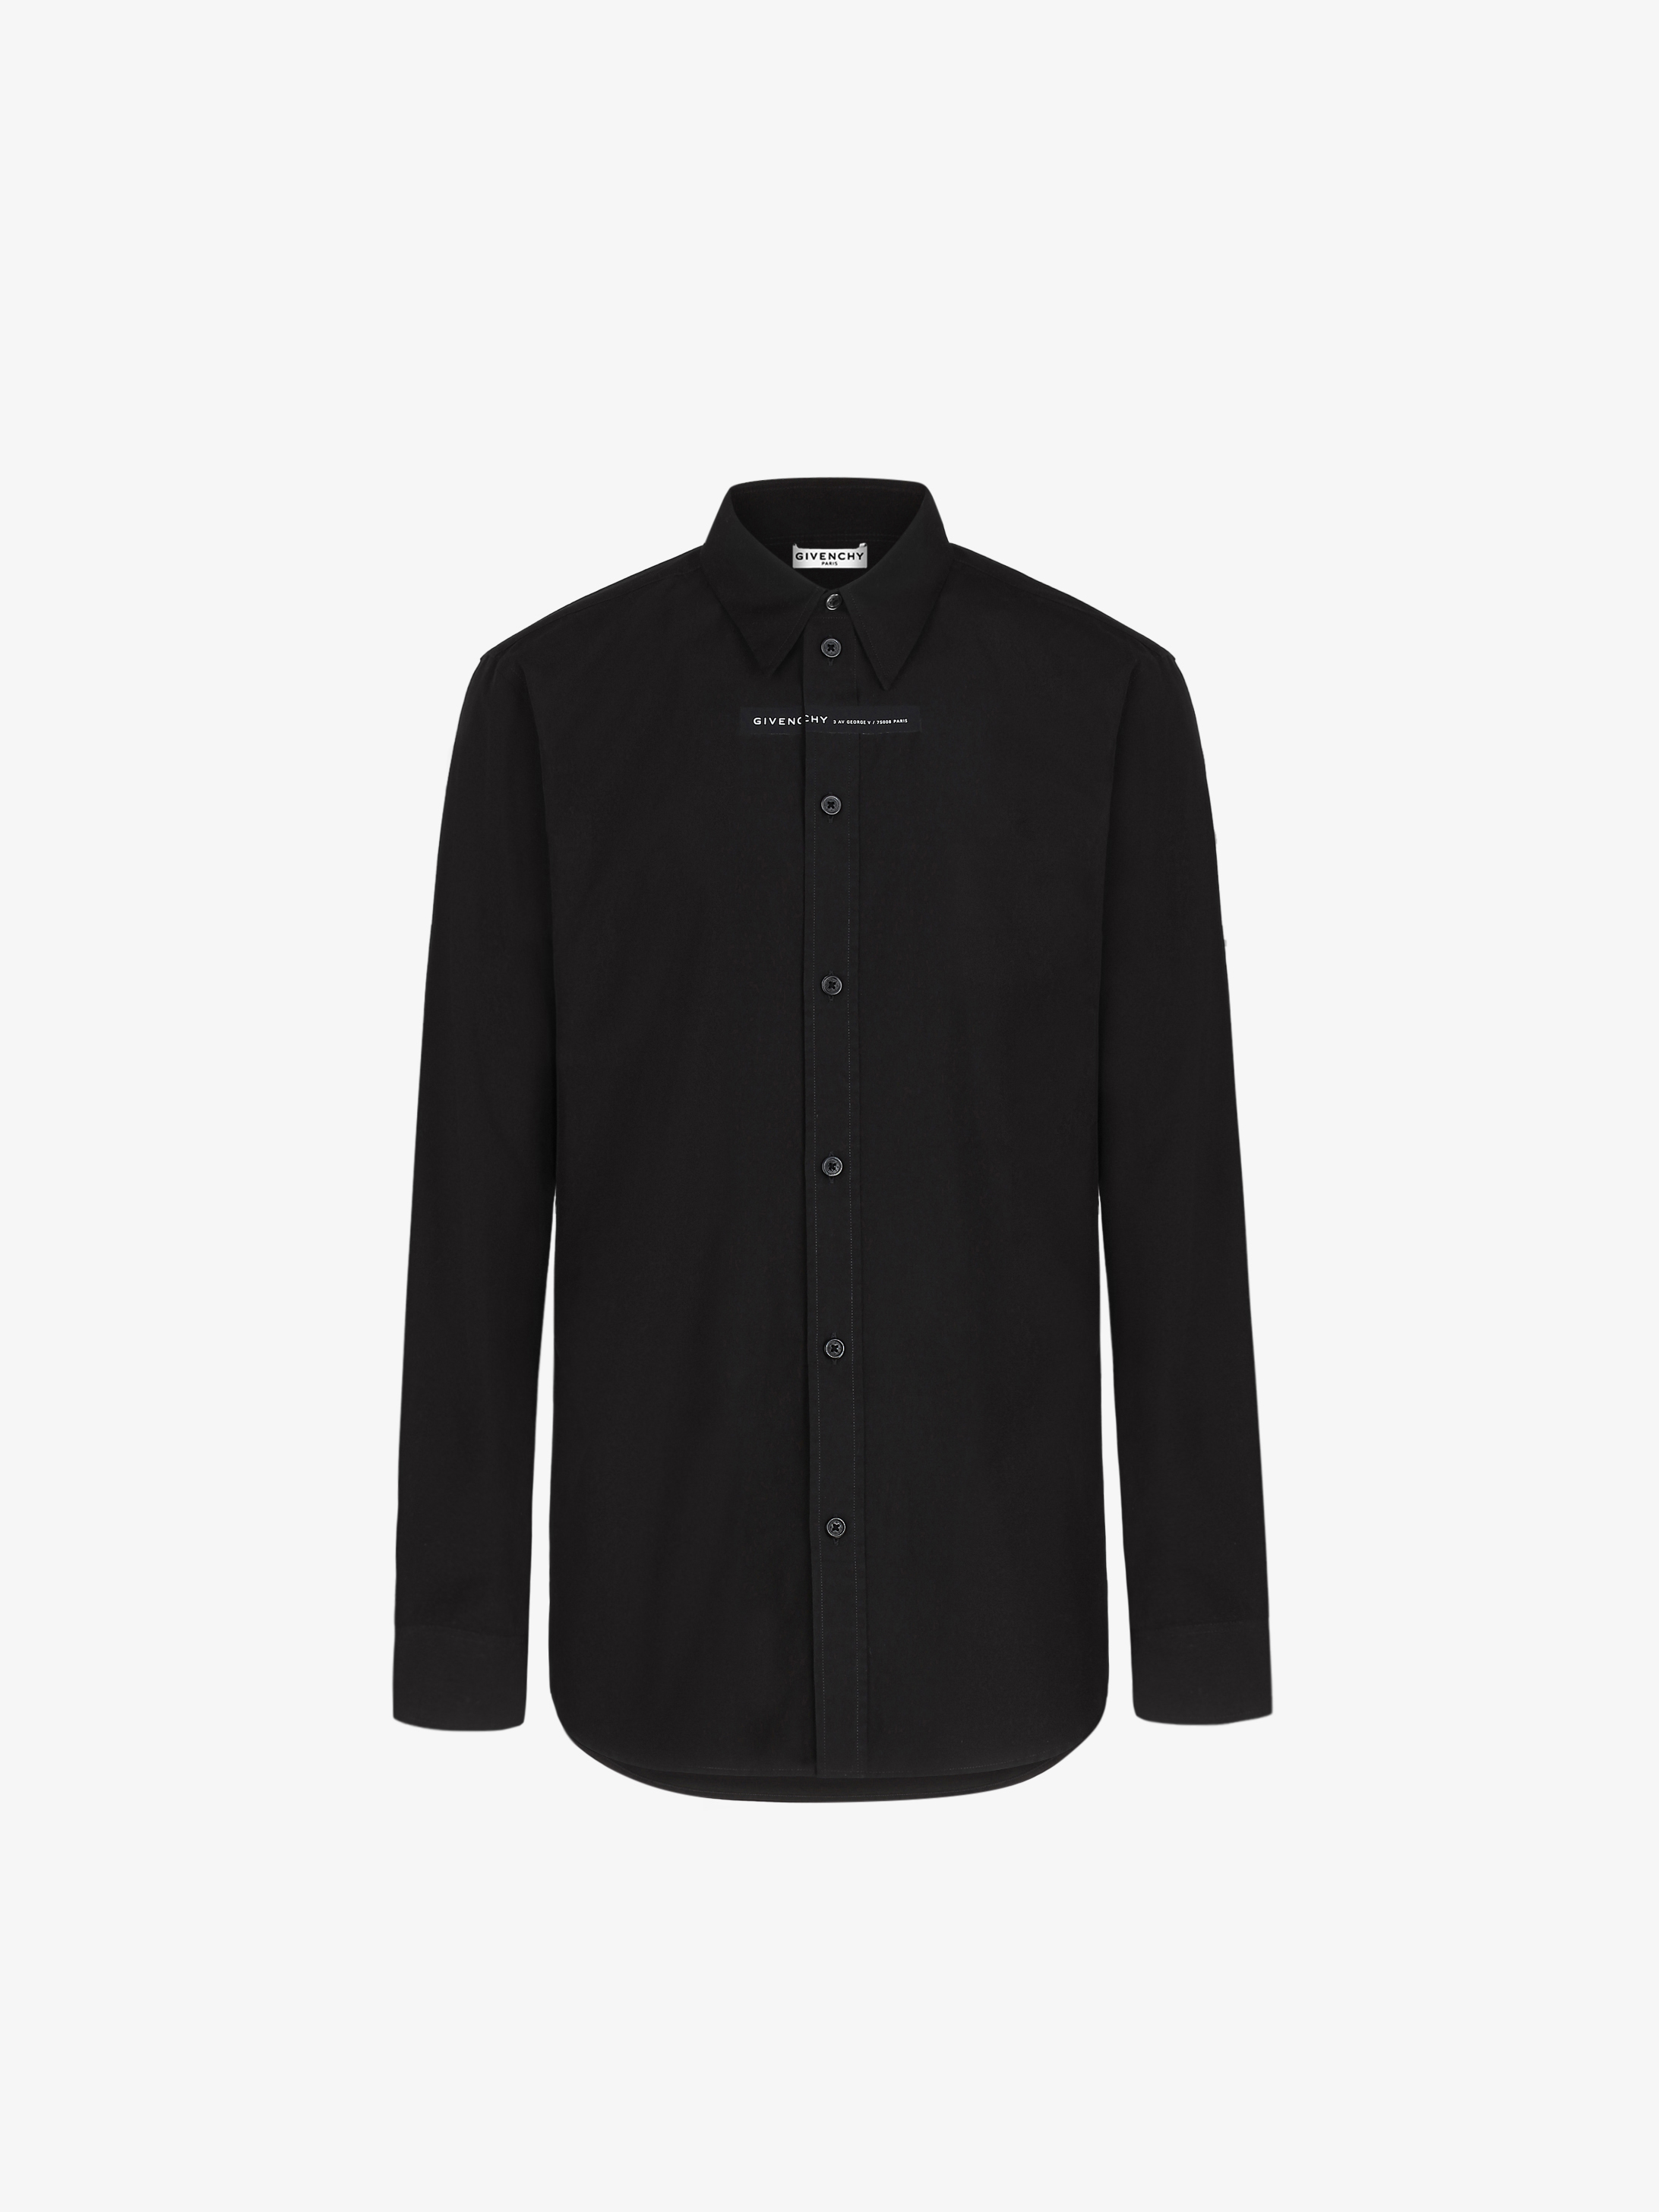 GIVENCHY ADDRESS shirt in coton